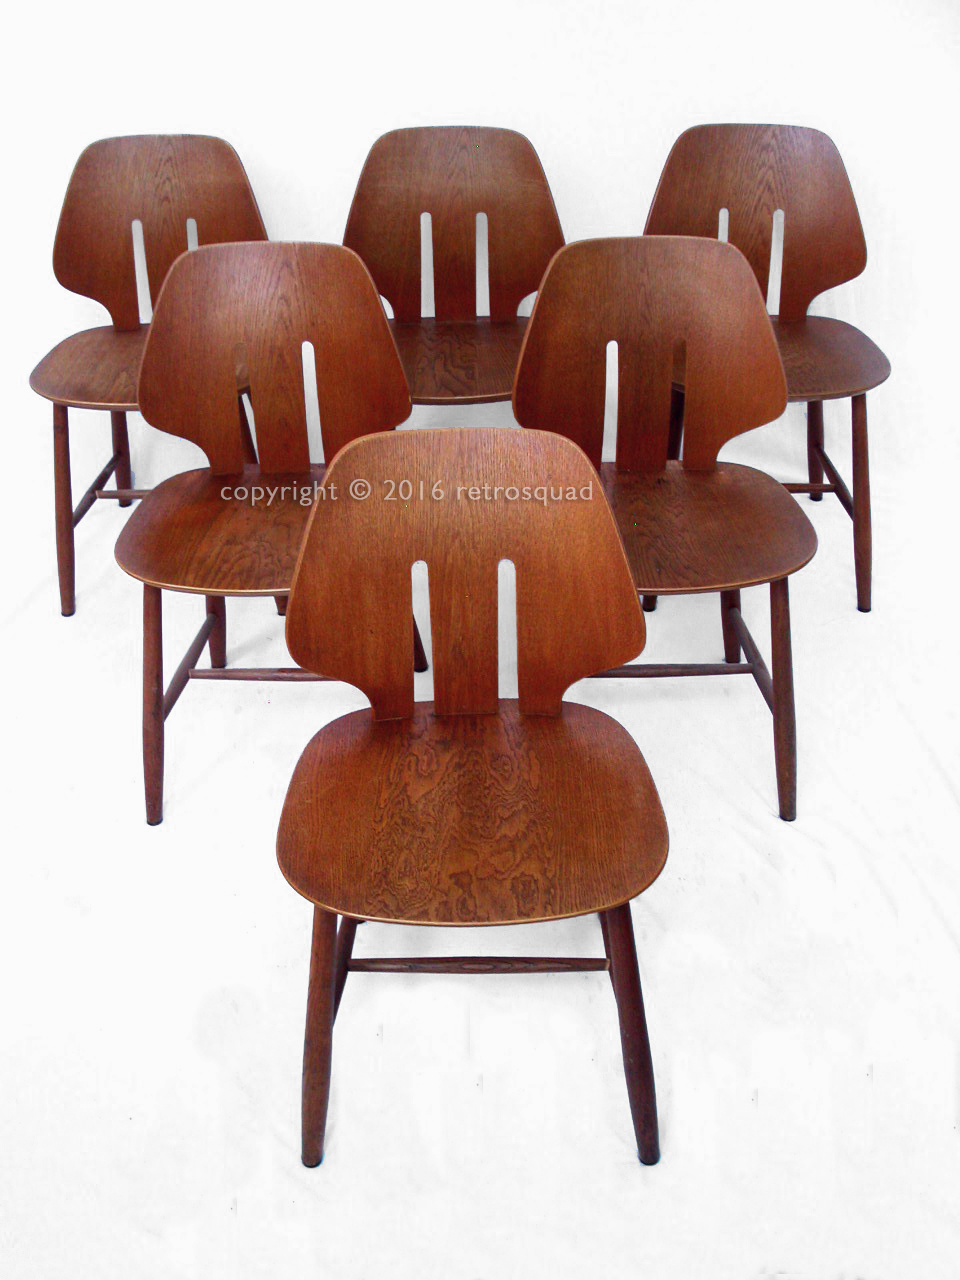 6 Modern Dining Chairs By Ejvind A. Johanss For FDB Mobler Vintage 1960 04